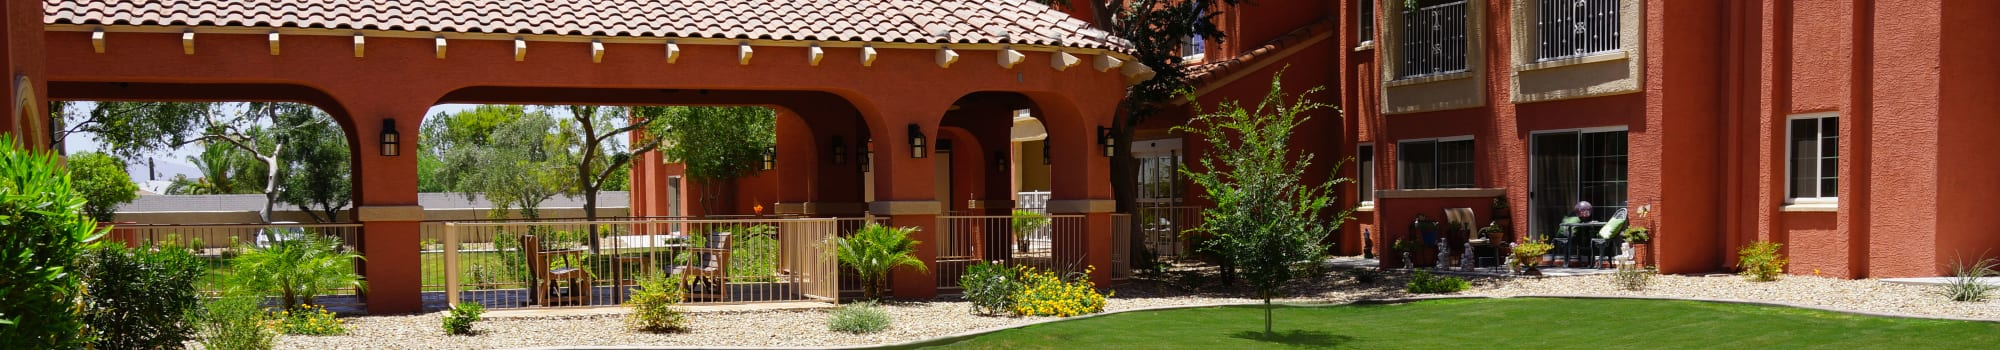 About us at Casa Del Rio Senior Living in Peoria, Arizona